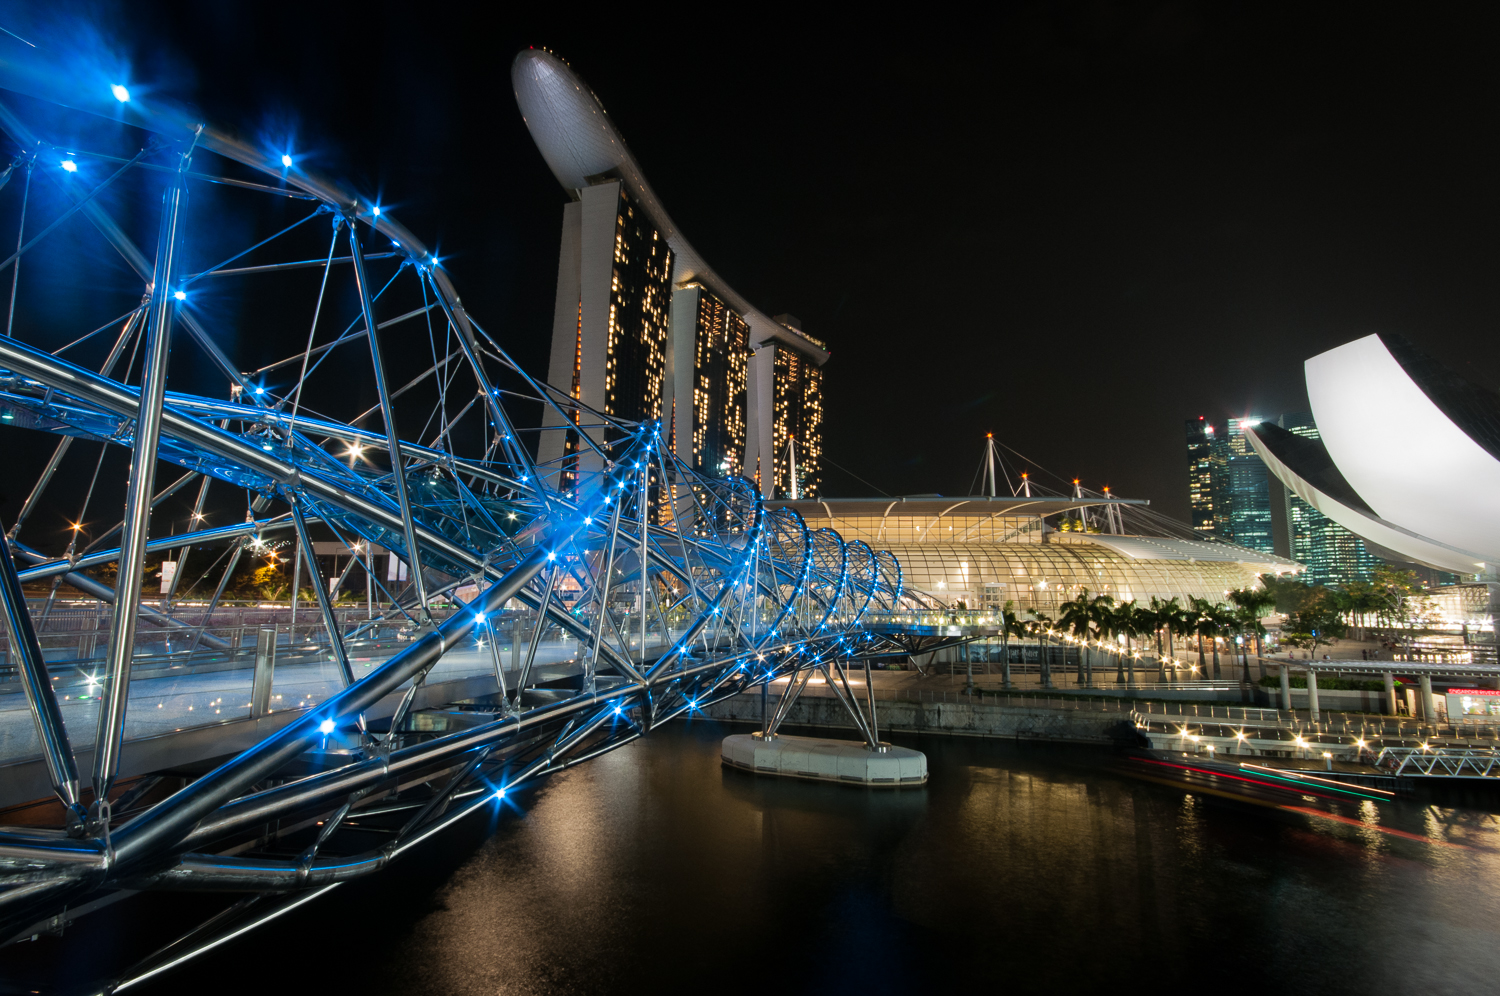 The Helix Bridge Singapore